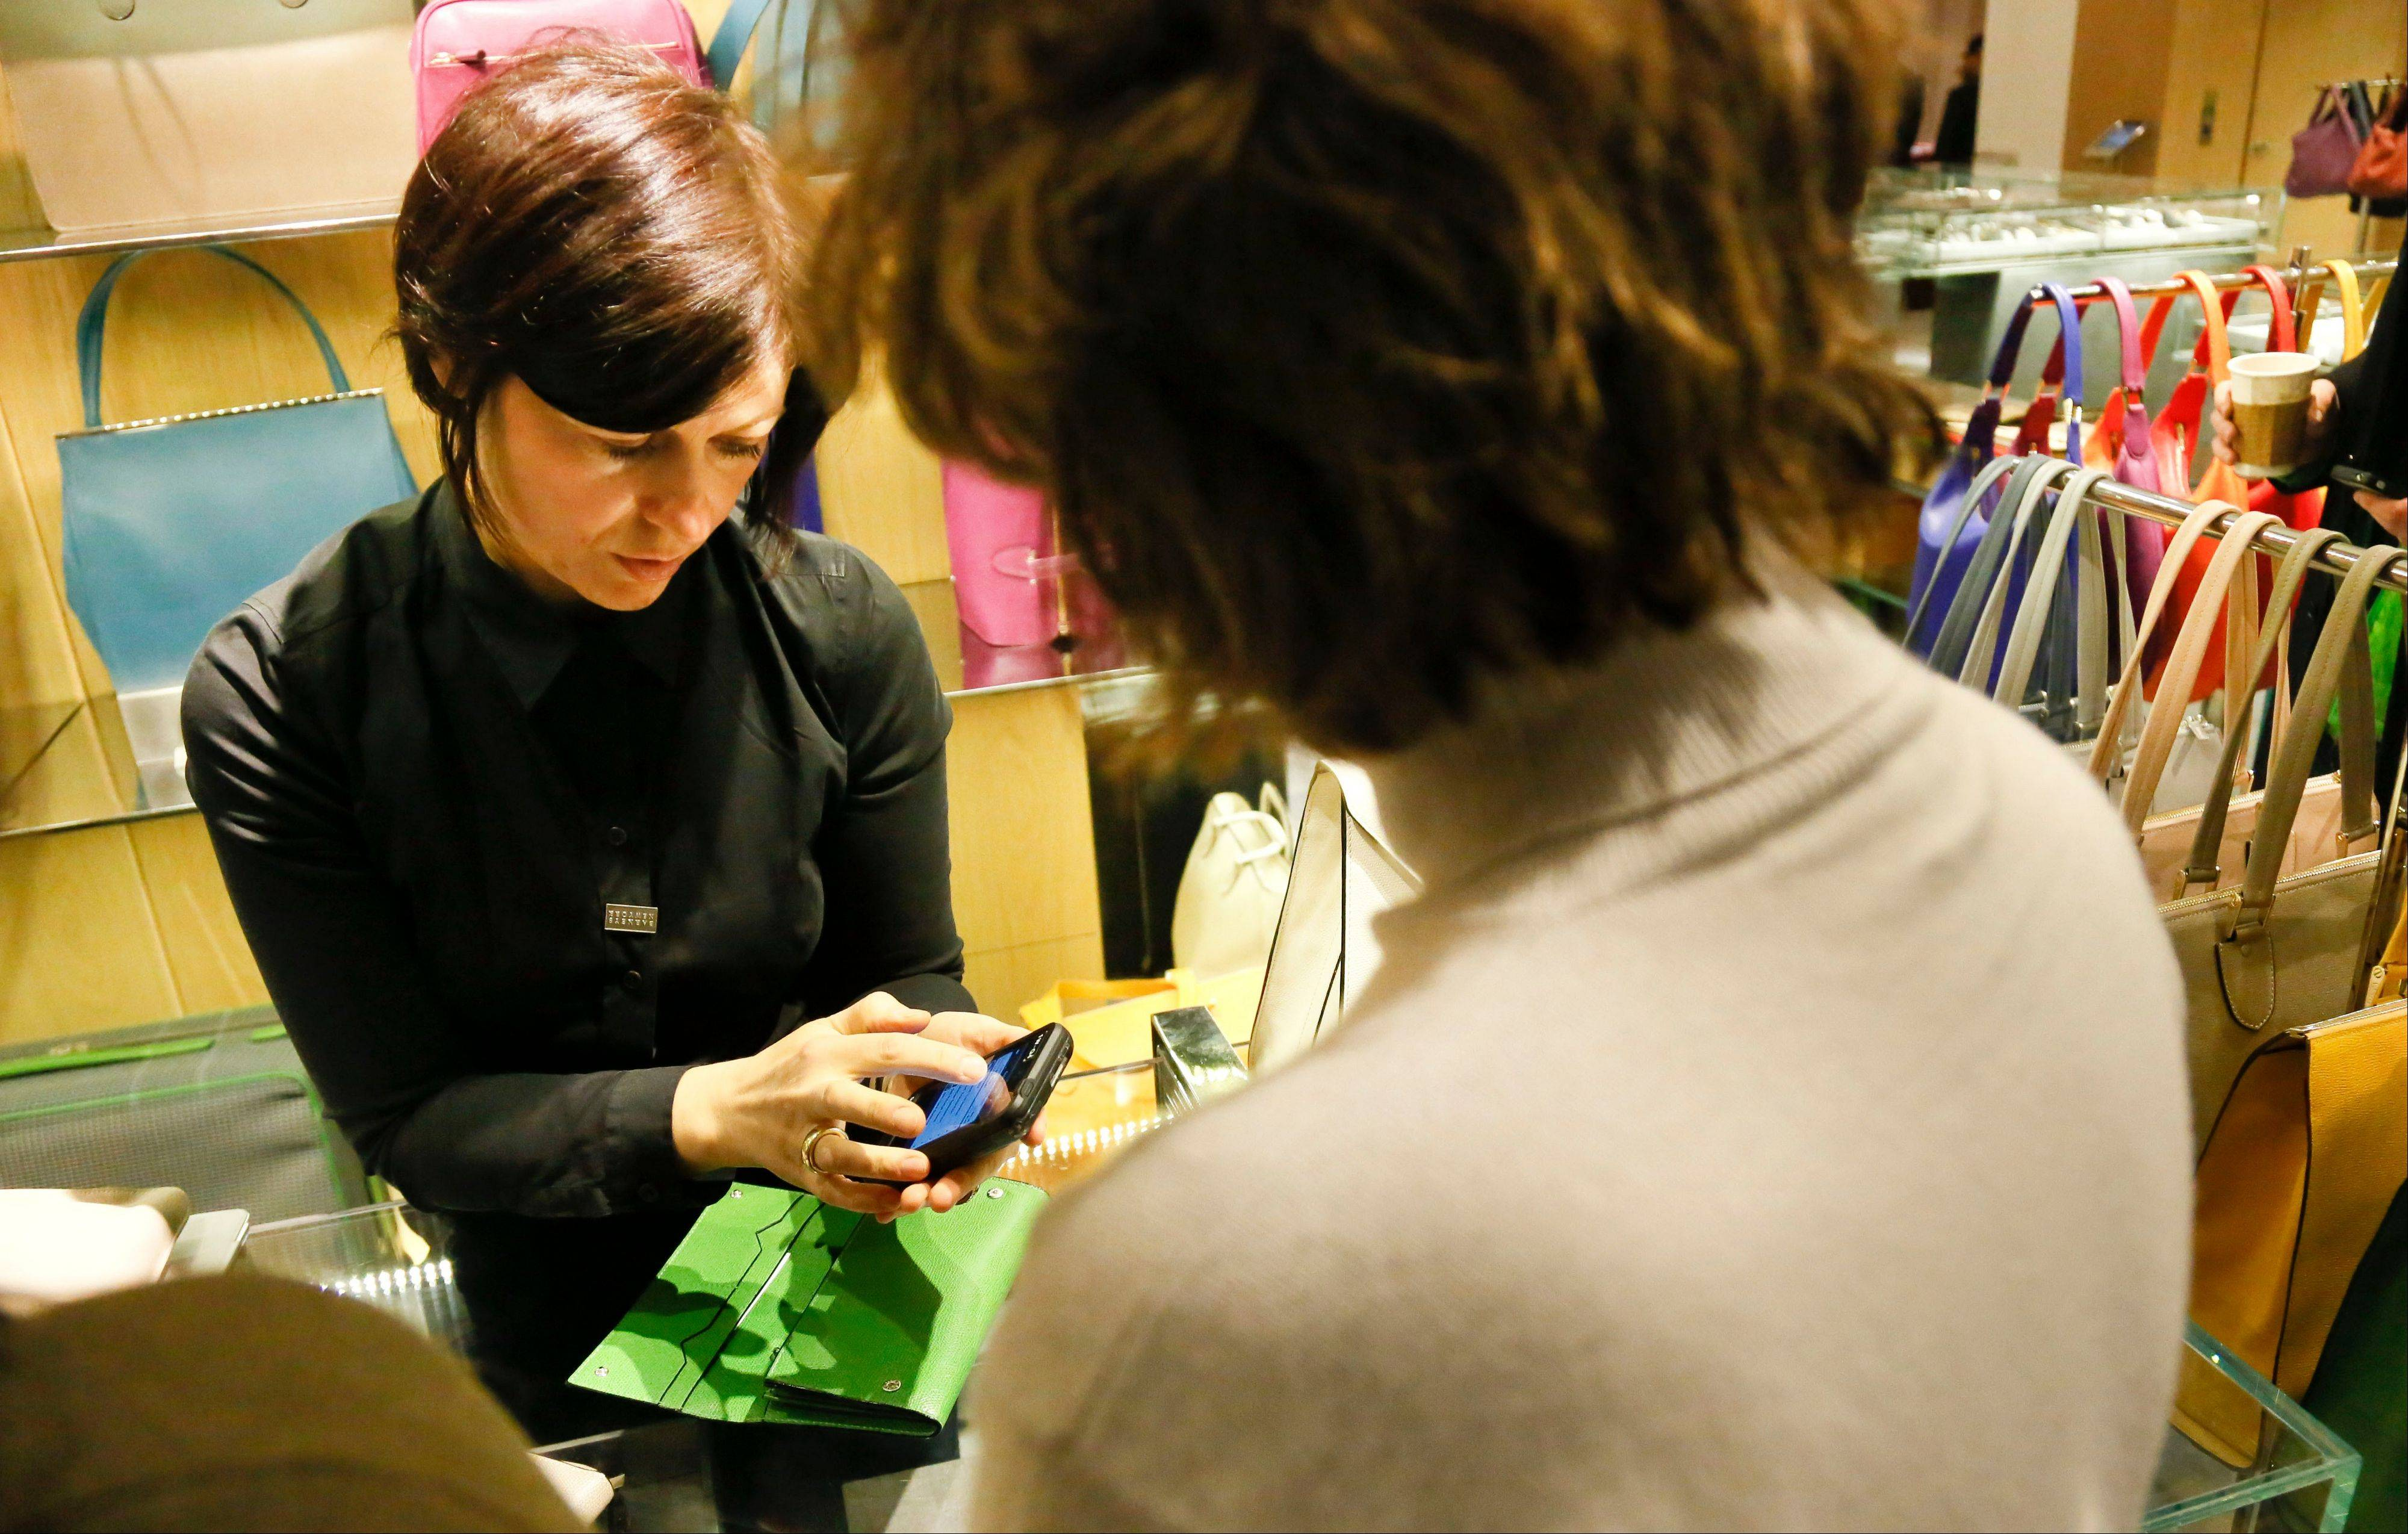 A sales staff member at Barneys New York uses an iPod Touch to help a customer make a purchase, in New York. Stores across the country are ditching the old-fashioned, clunky cash registers and instead having salespeople -- and shoppers themselves -- checkout on smartphones and tablet computers.